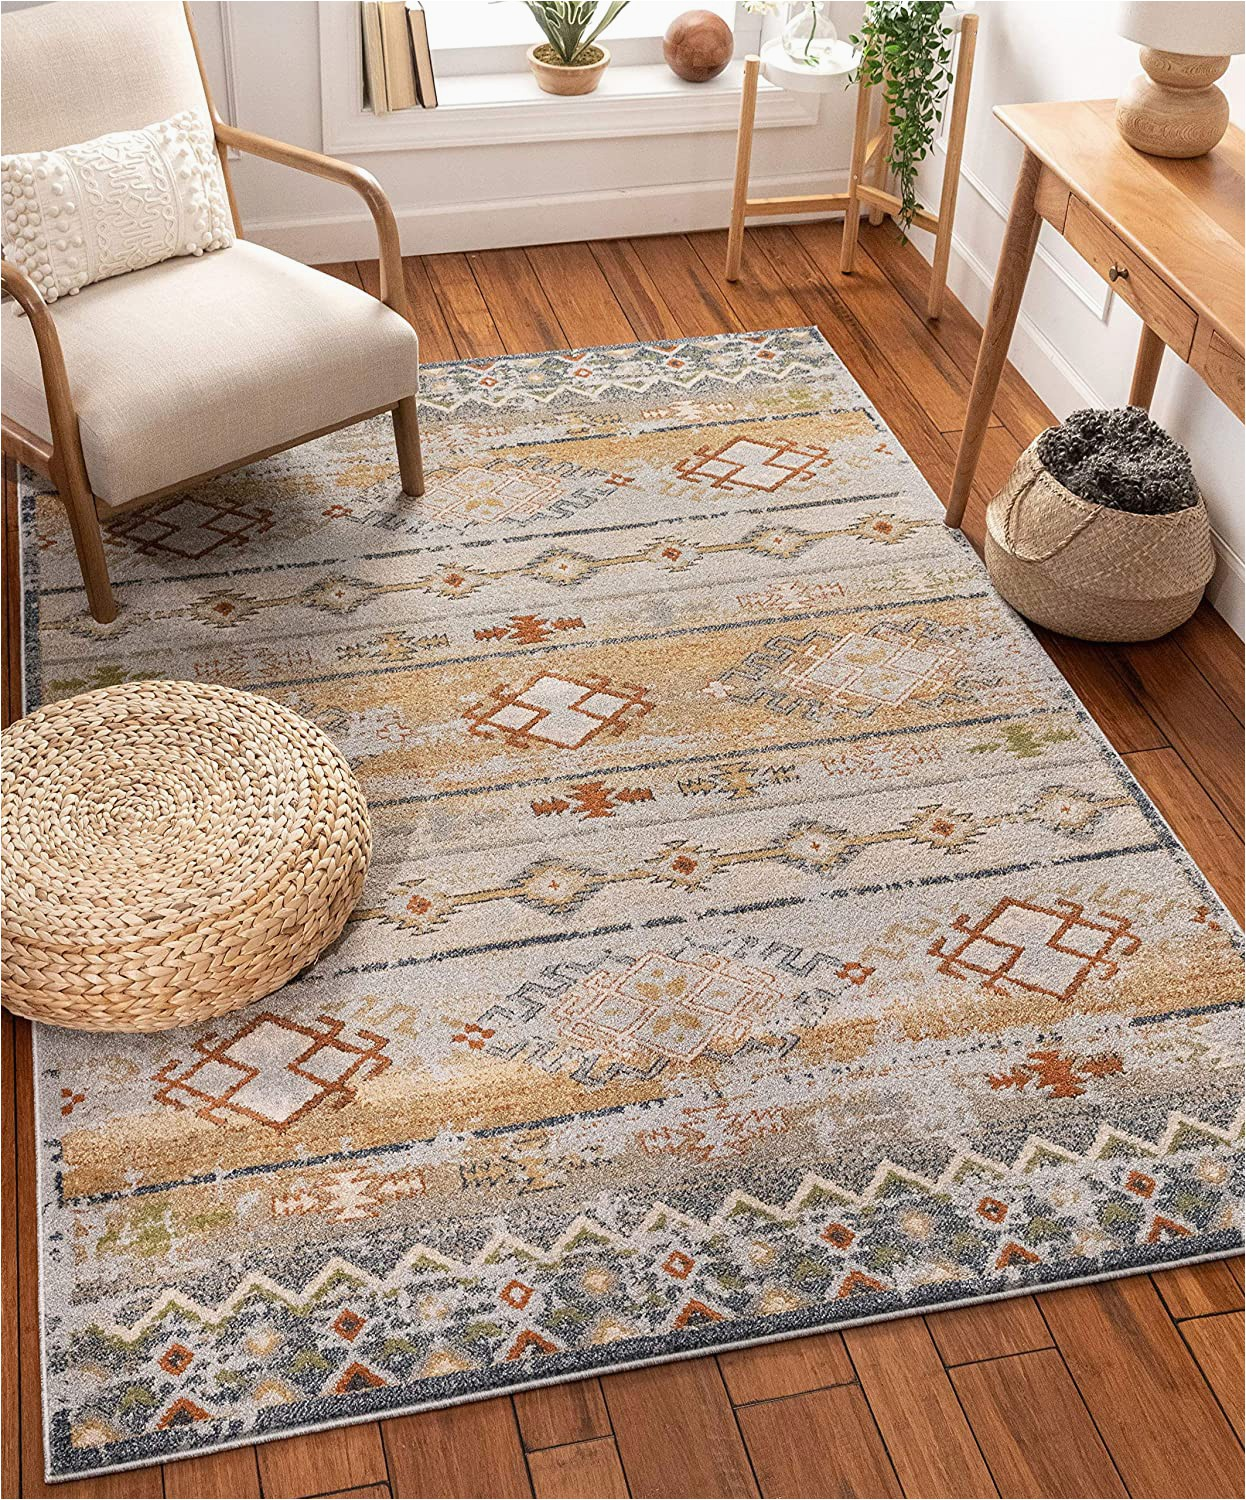 "Bed Bath and Beyond Small area Rugs Well Woven Elu Cream Vintage Panel Pattern area Rug 5×7 5 3"" X 7 3"""